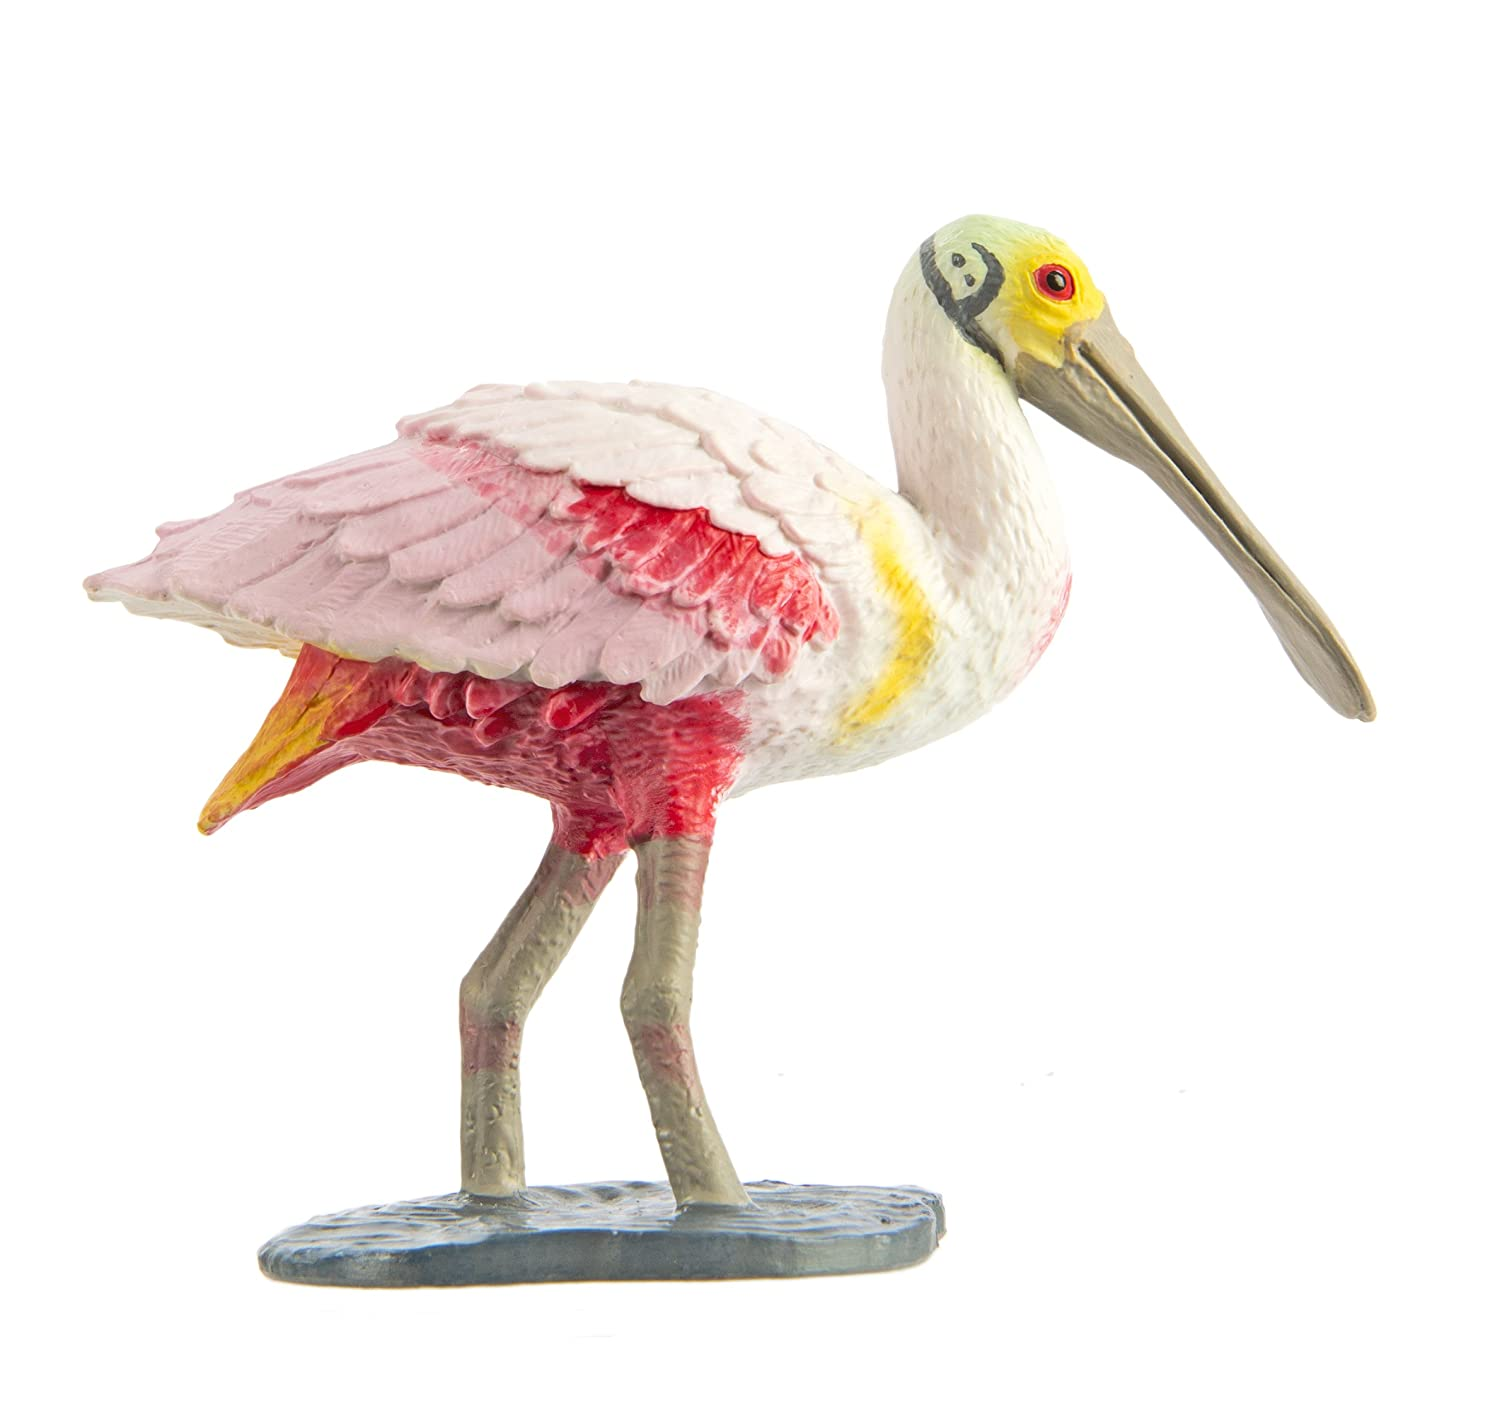 Safari Ltd Quality Construction from Phthalate Lead and BPA Free Materials Spoonbill for Ages 3 and Up 224829 Wildlife